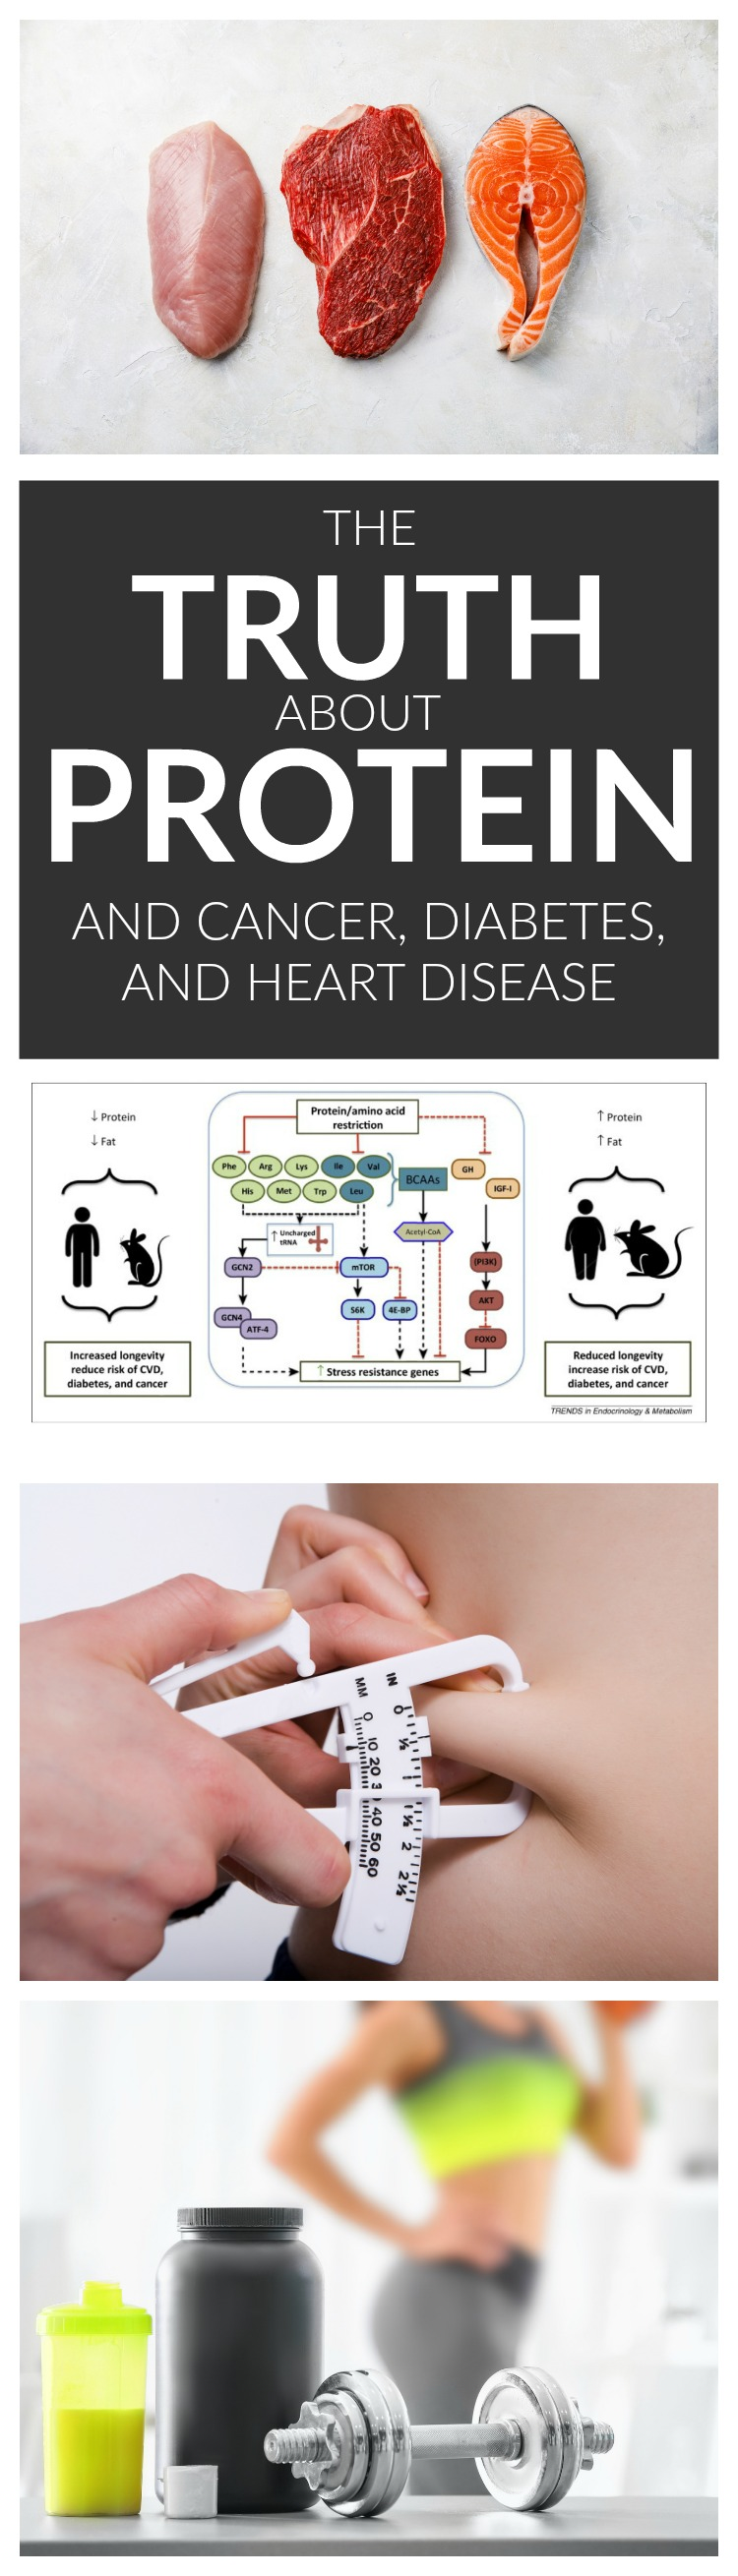 The Truth About Protein and Cancer, Diabetes, and Heart Disease